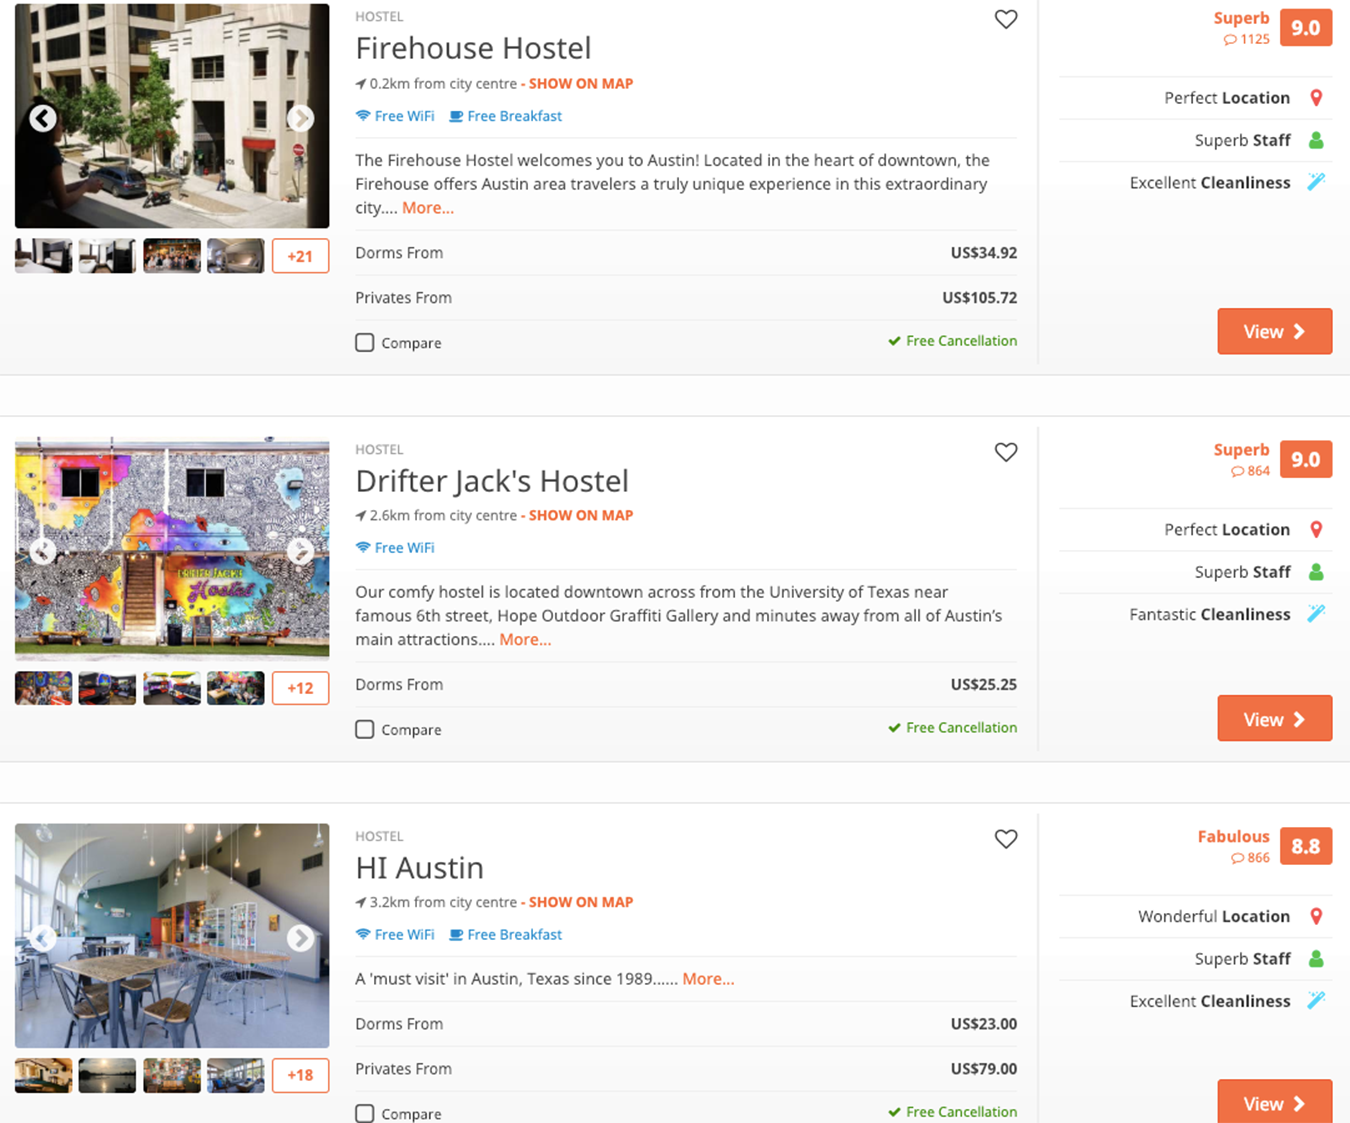 hostel search listings for Austin, Texas